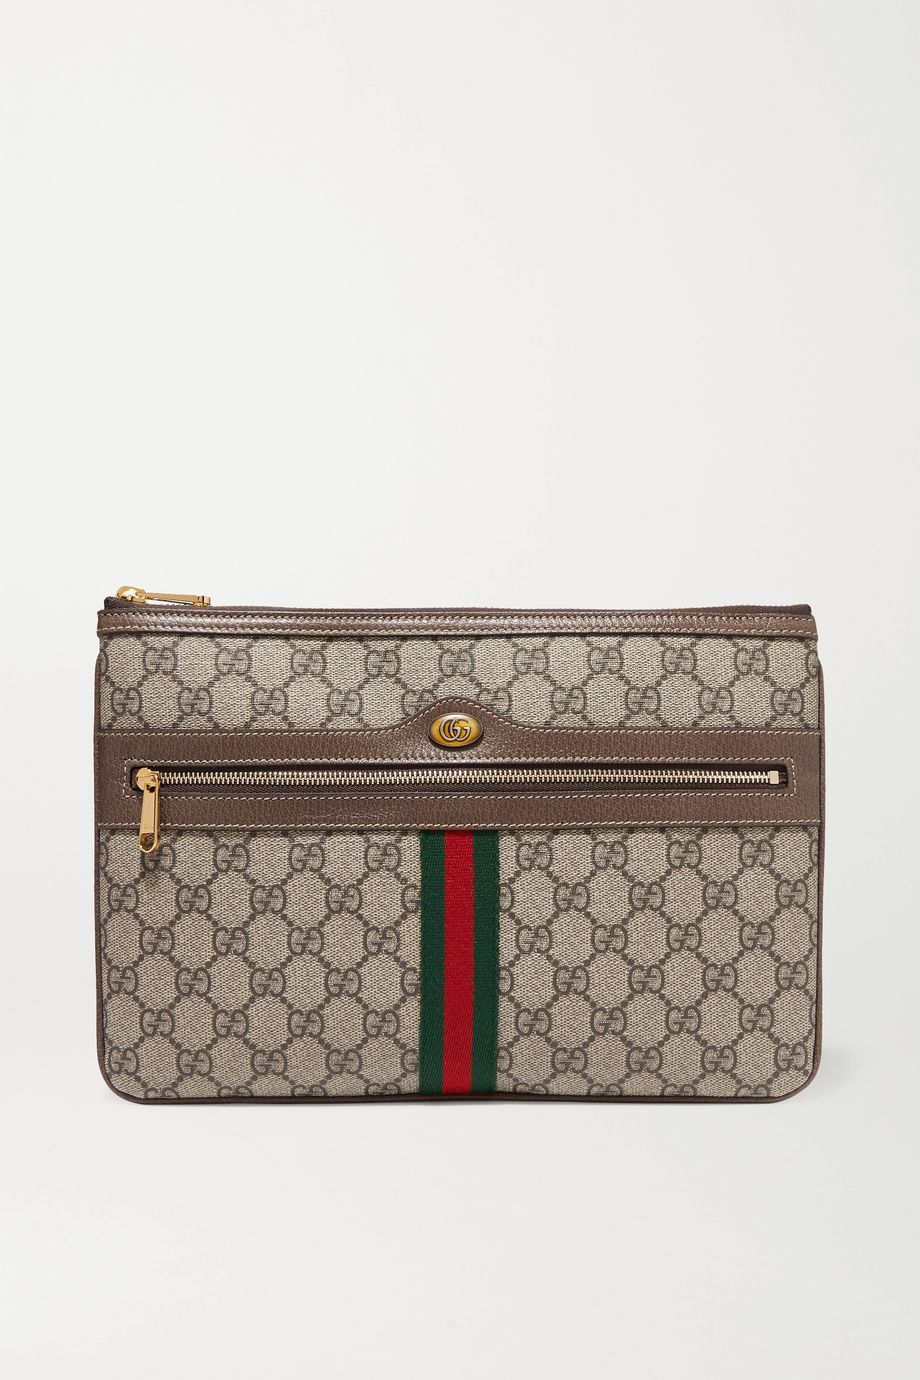 Gucci Ophidia medium textured leather-trimmed printed coated-canvas pouch